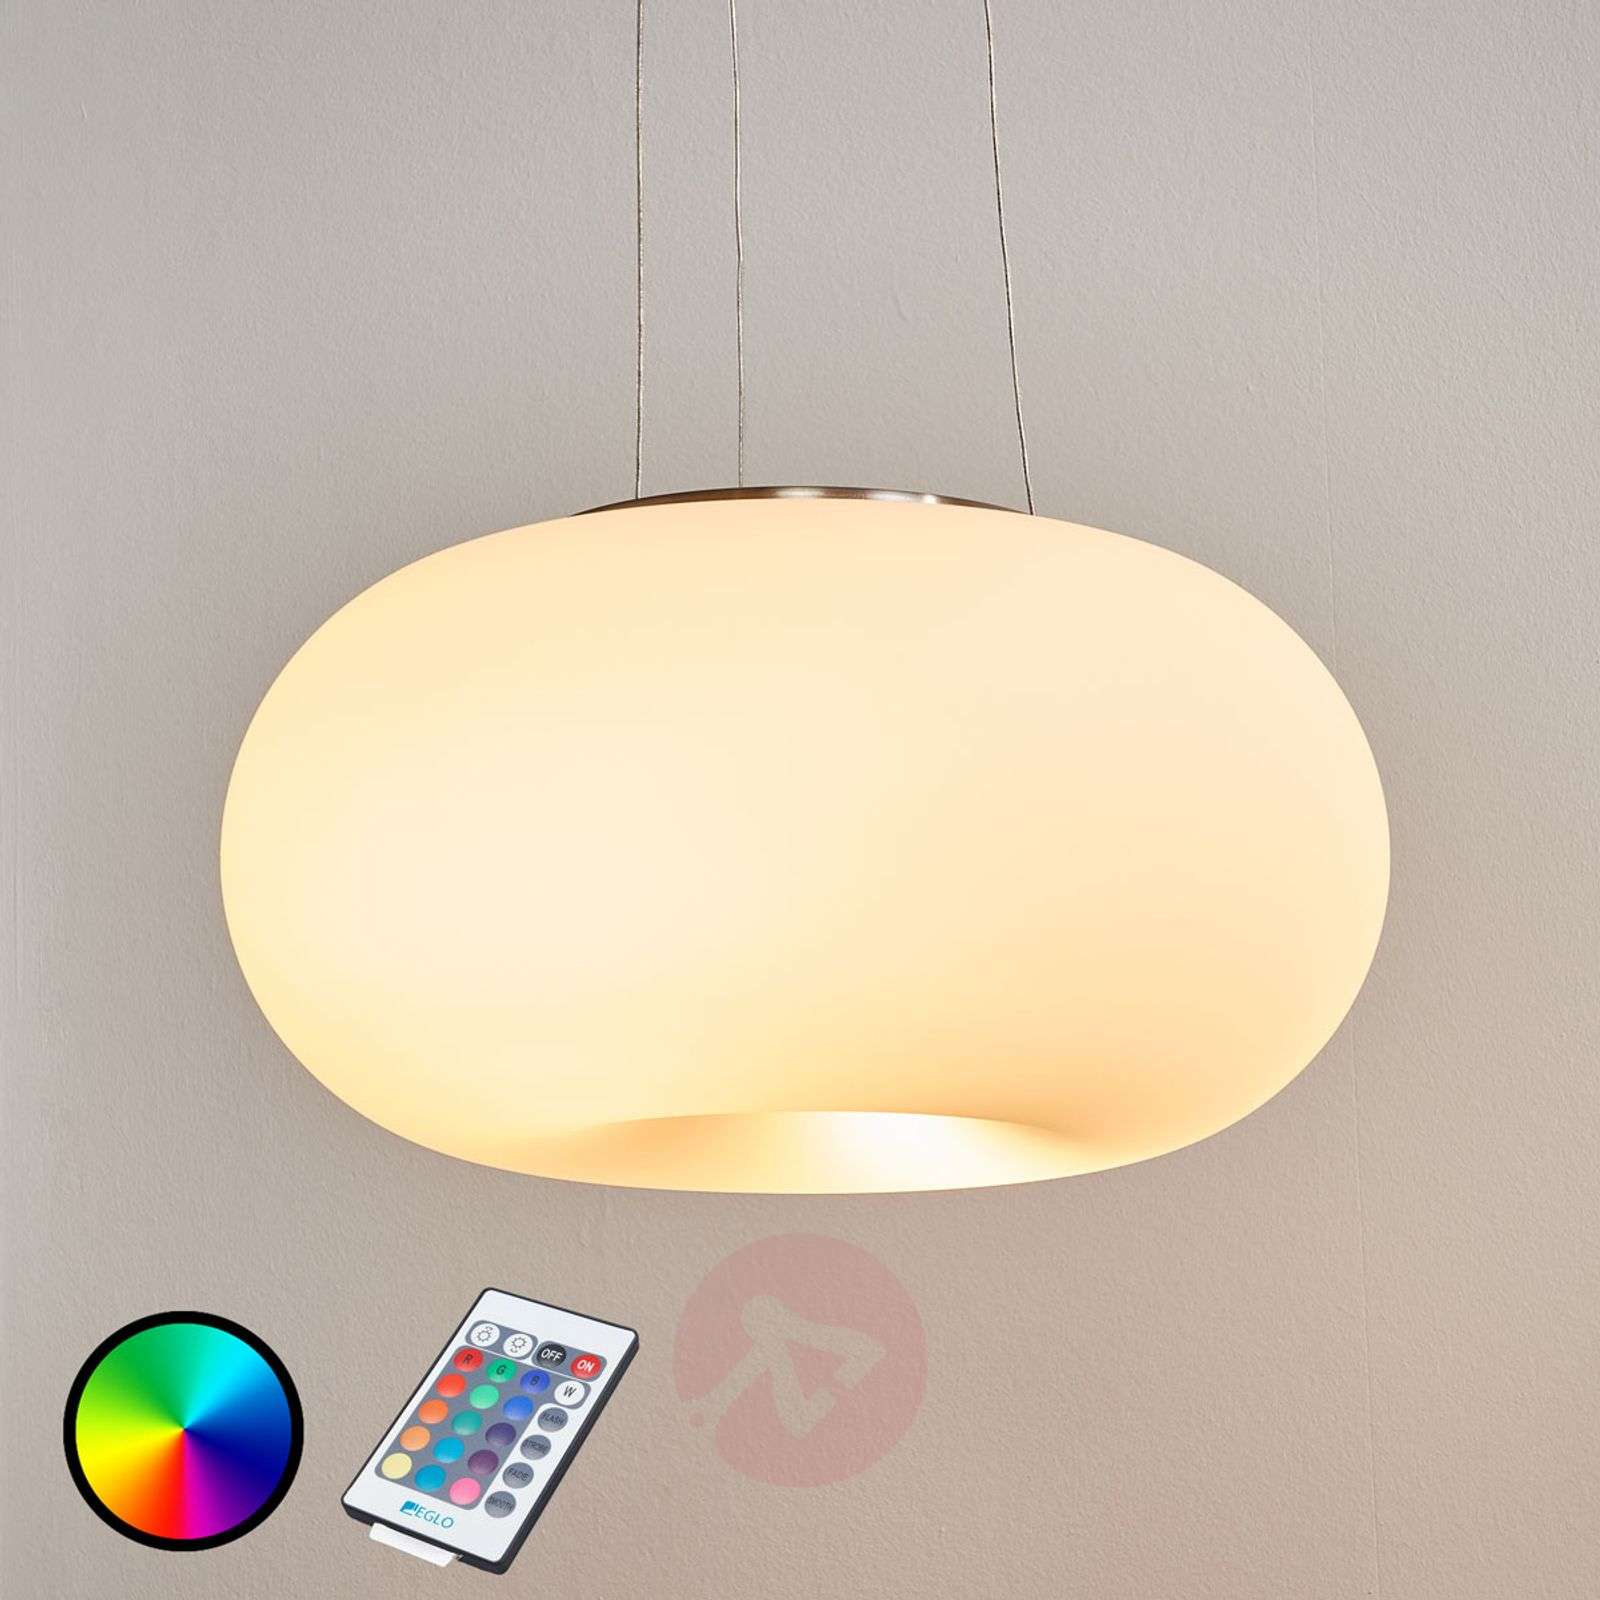 Remote-controlled LED hanging light Optica-C RGBW-3031992-01